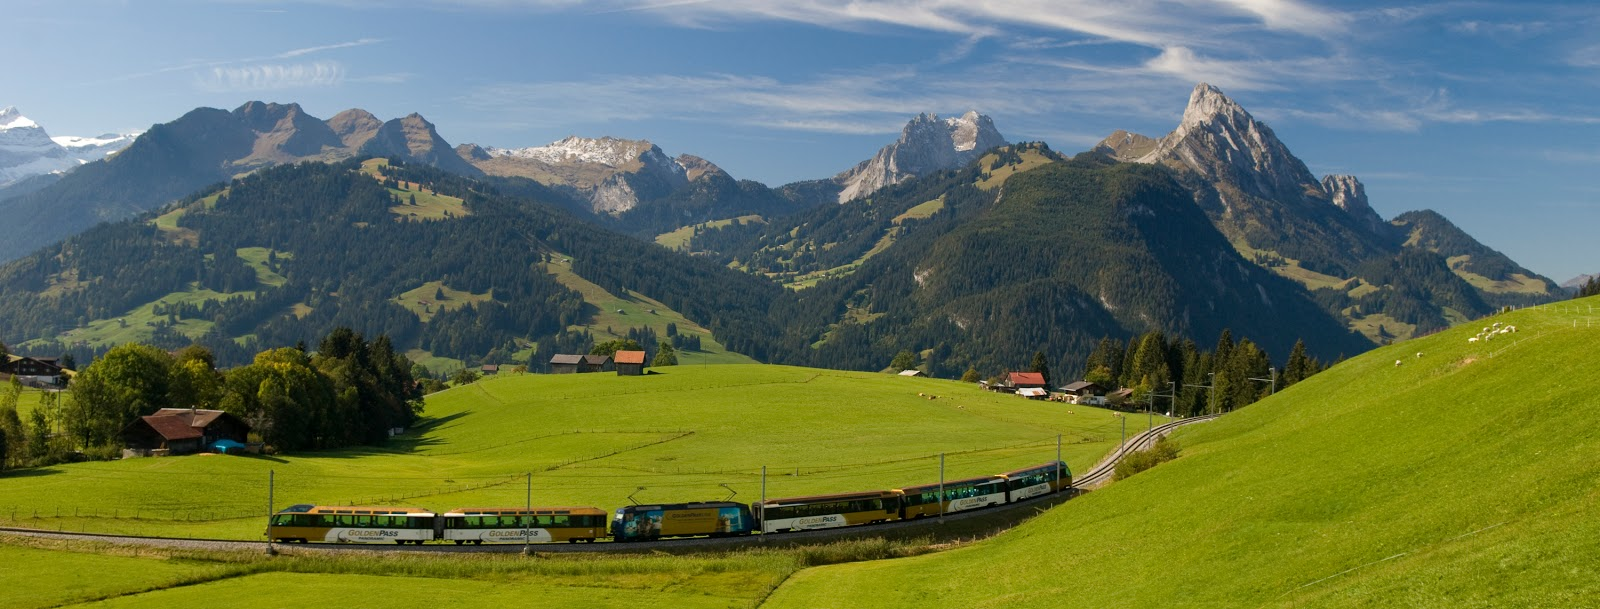 Enjoy the sublime Swiss countryside from the Golden Pass Panoramic Train. Photo: Gstaad Saanenland Tourismus.